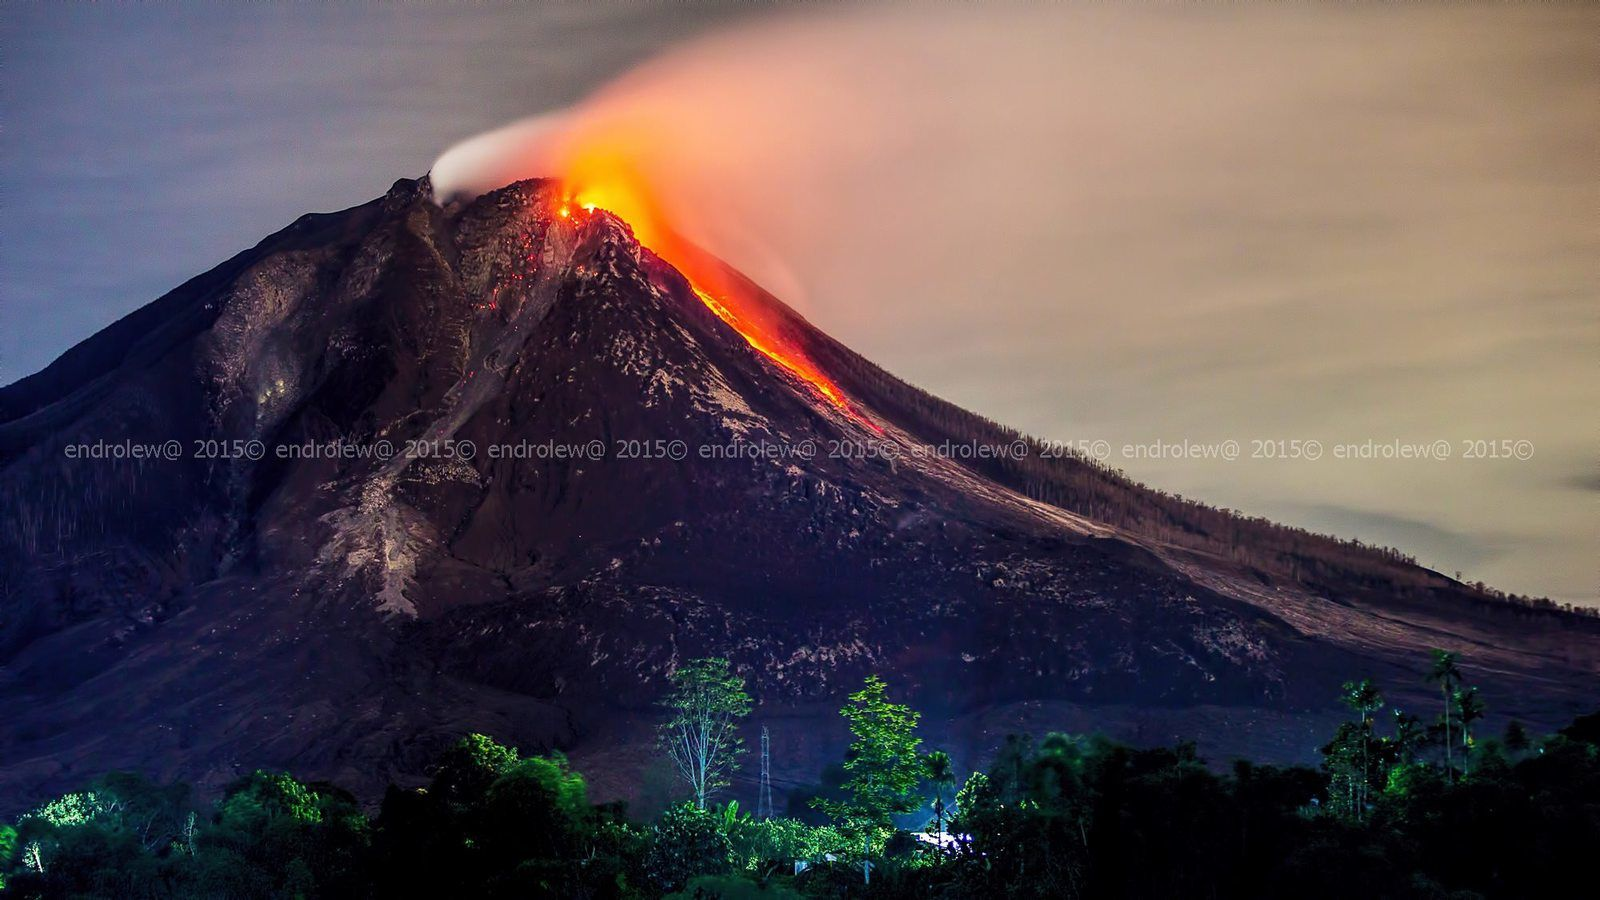 Sinabung the 06.17.2015 / 10:26 p.m. avalanche of blocks and traces of the previous pyroclastic flows - photo endrolew@